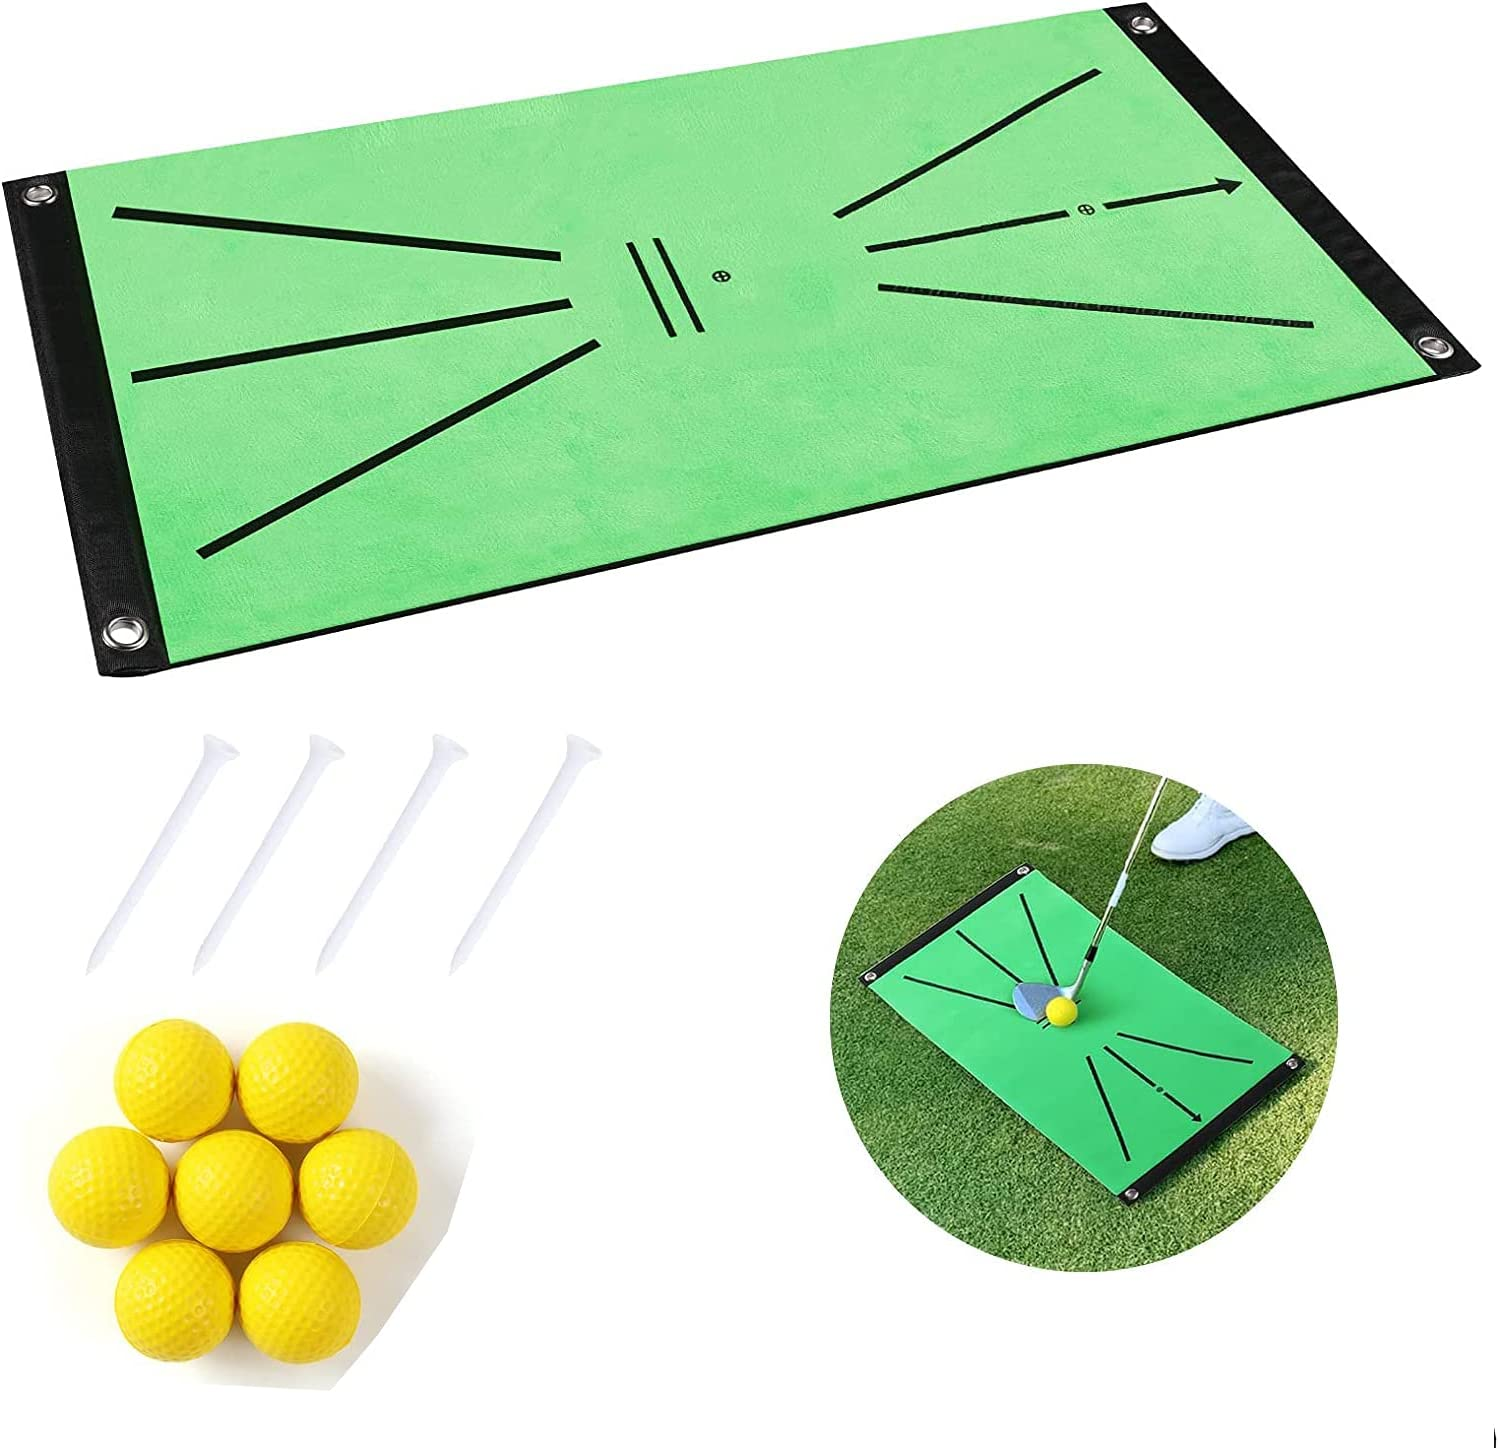 Selling and selling NR Upgrade Golf Swing Acustrike Mat Fees free Training Ma